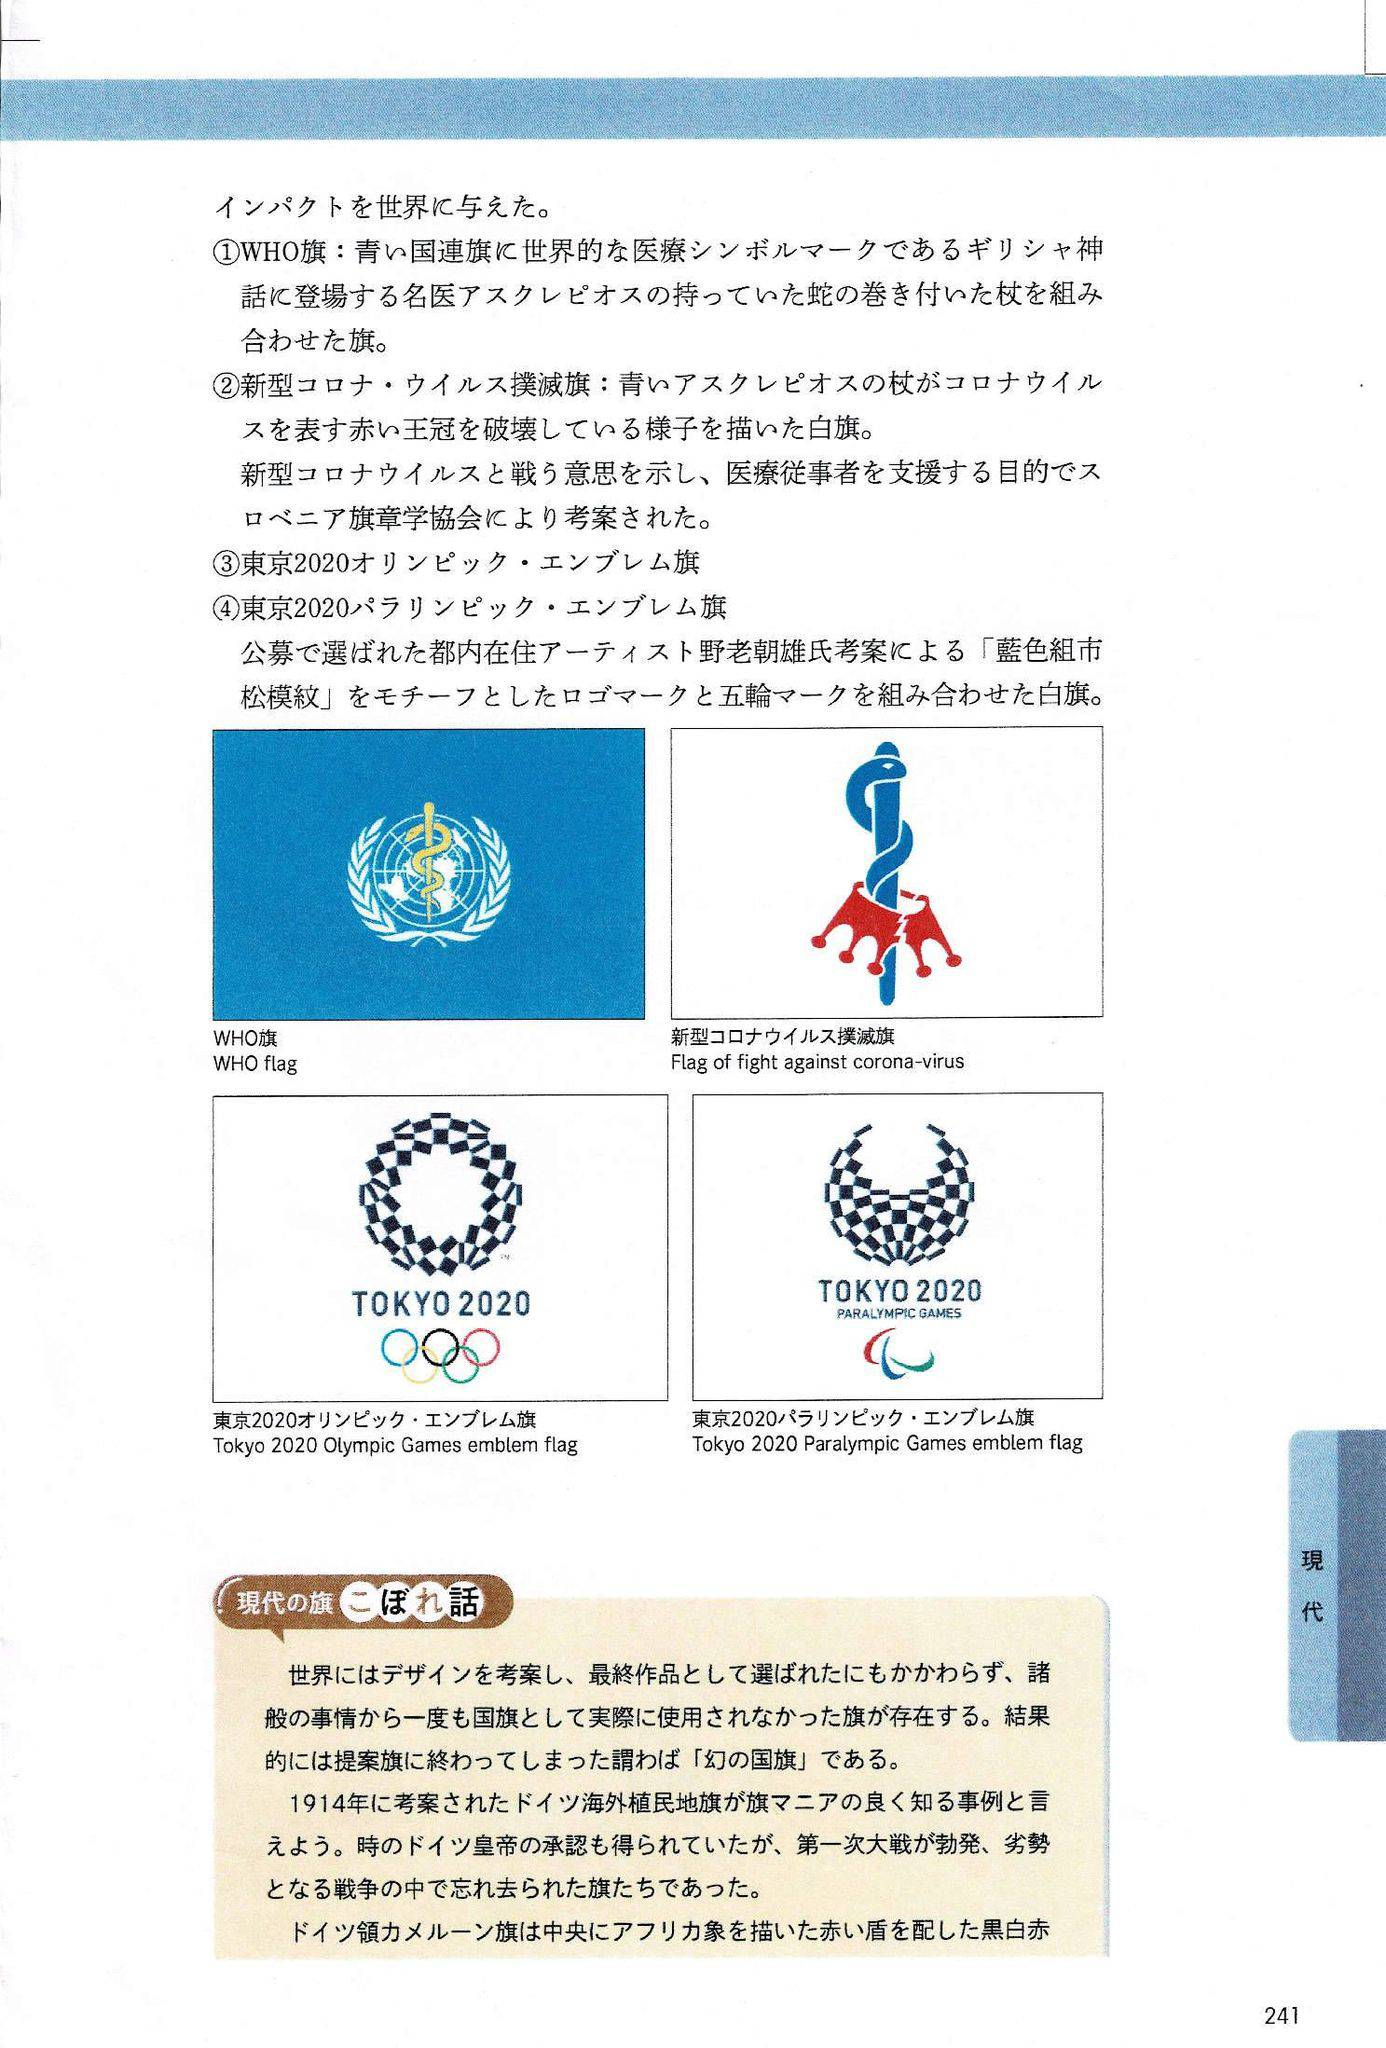 New flag book from Nozomi Kariyasu, The Magnificent Guide to World History through Flags, August 2020.